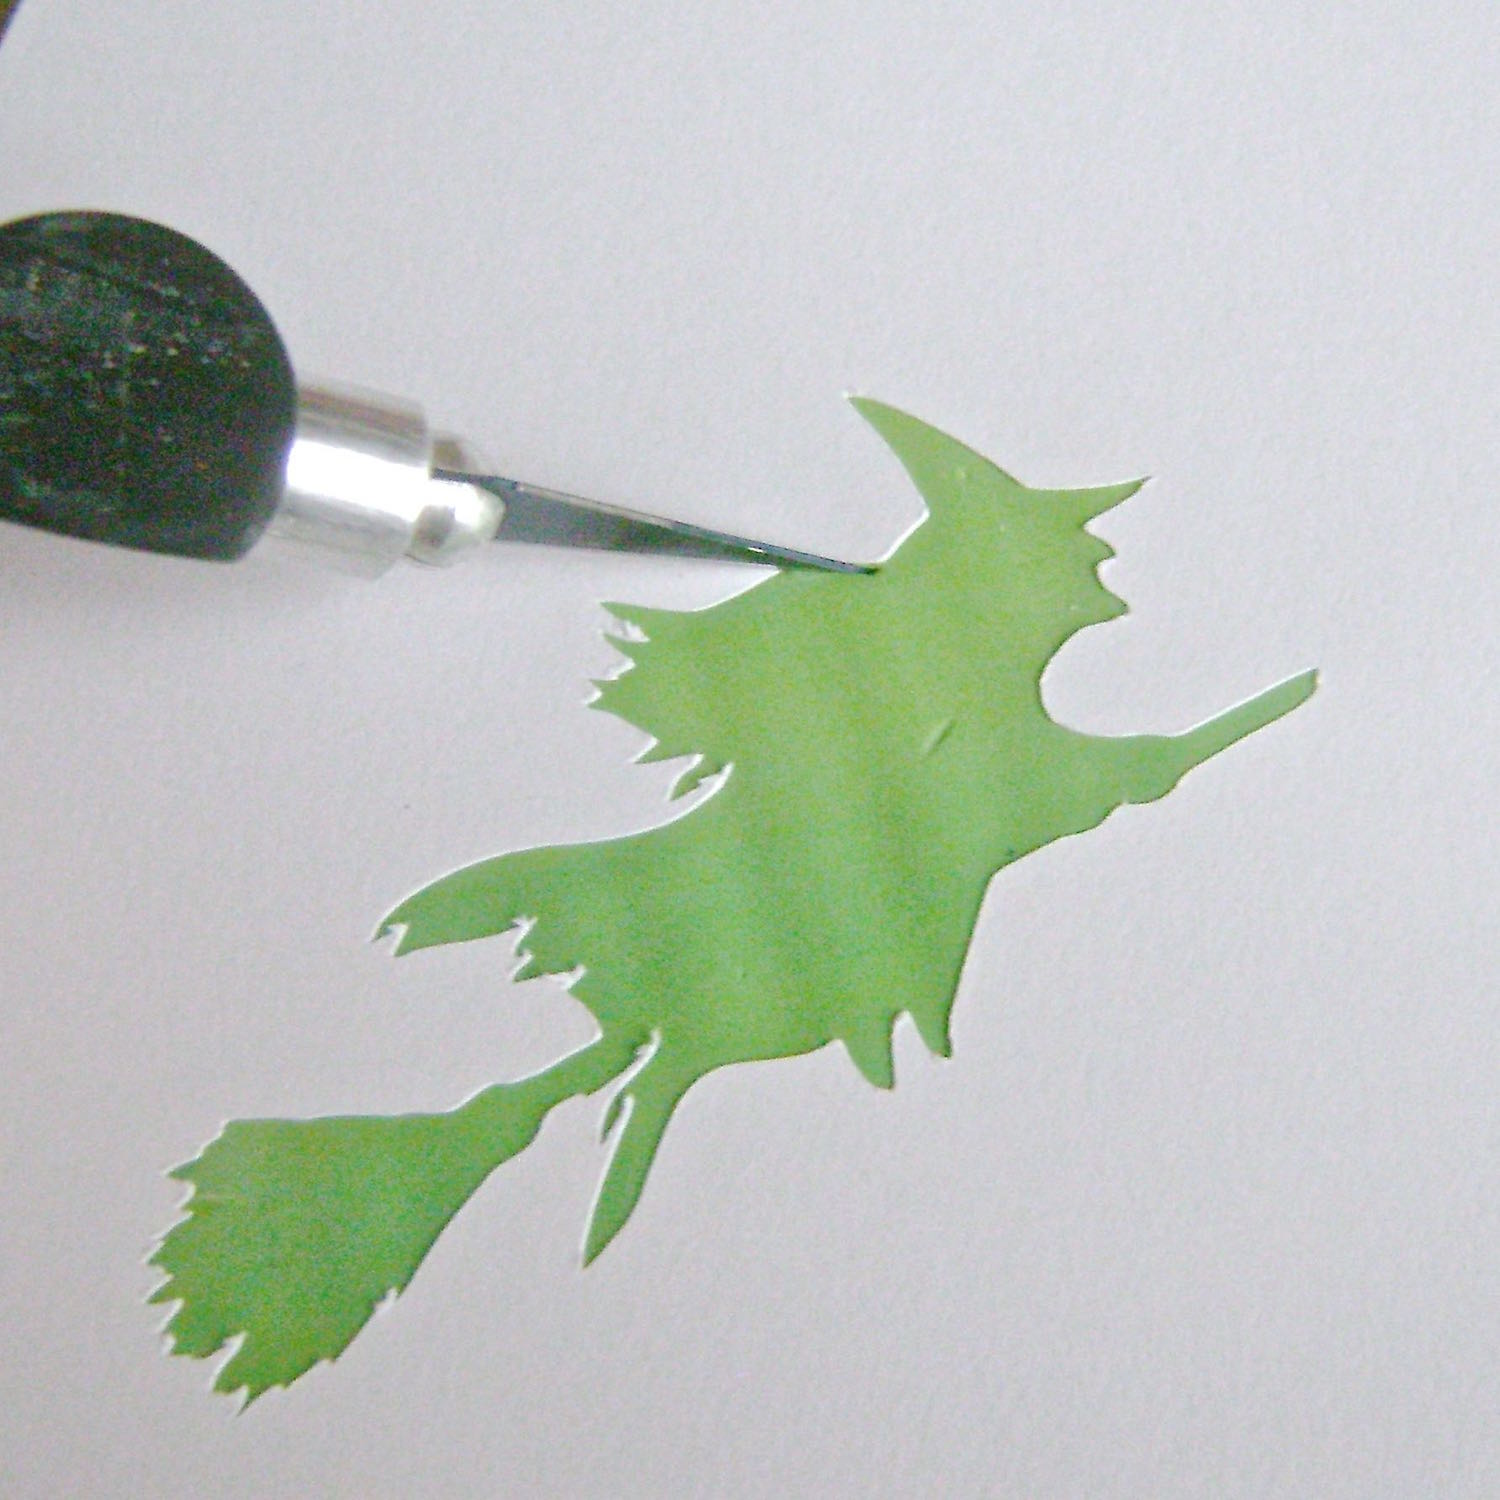 step 12 - Use a craft knife to cut the image out of the clay.